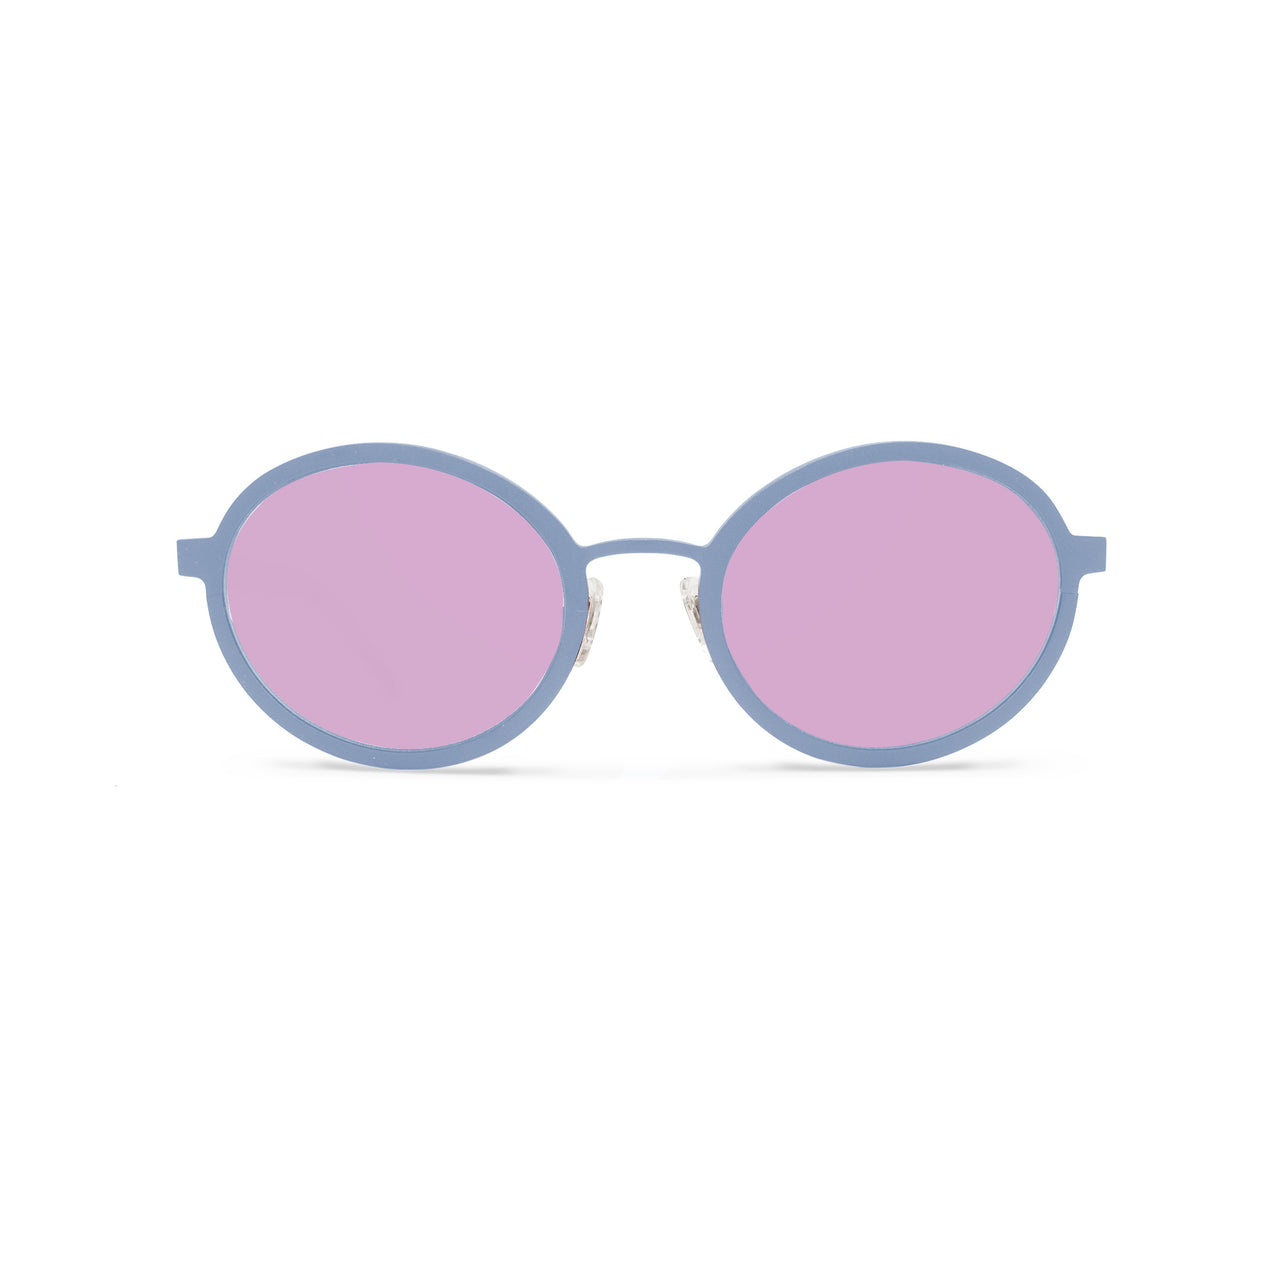 Metal. Matte Powder Blue. Sherbert Mirror Lens. - BLYSZAK eyewear eyewear - eyewear, optical, sunglasses